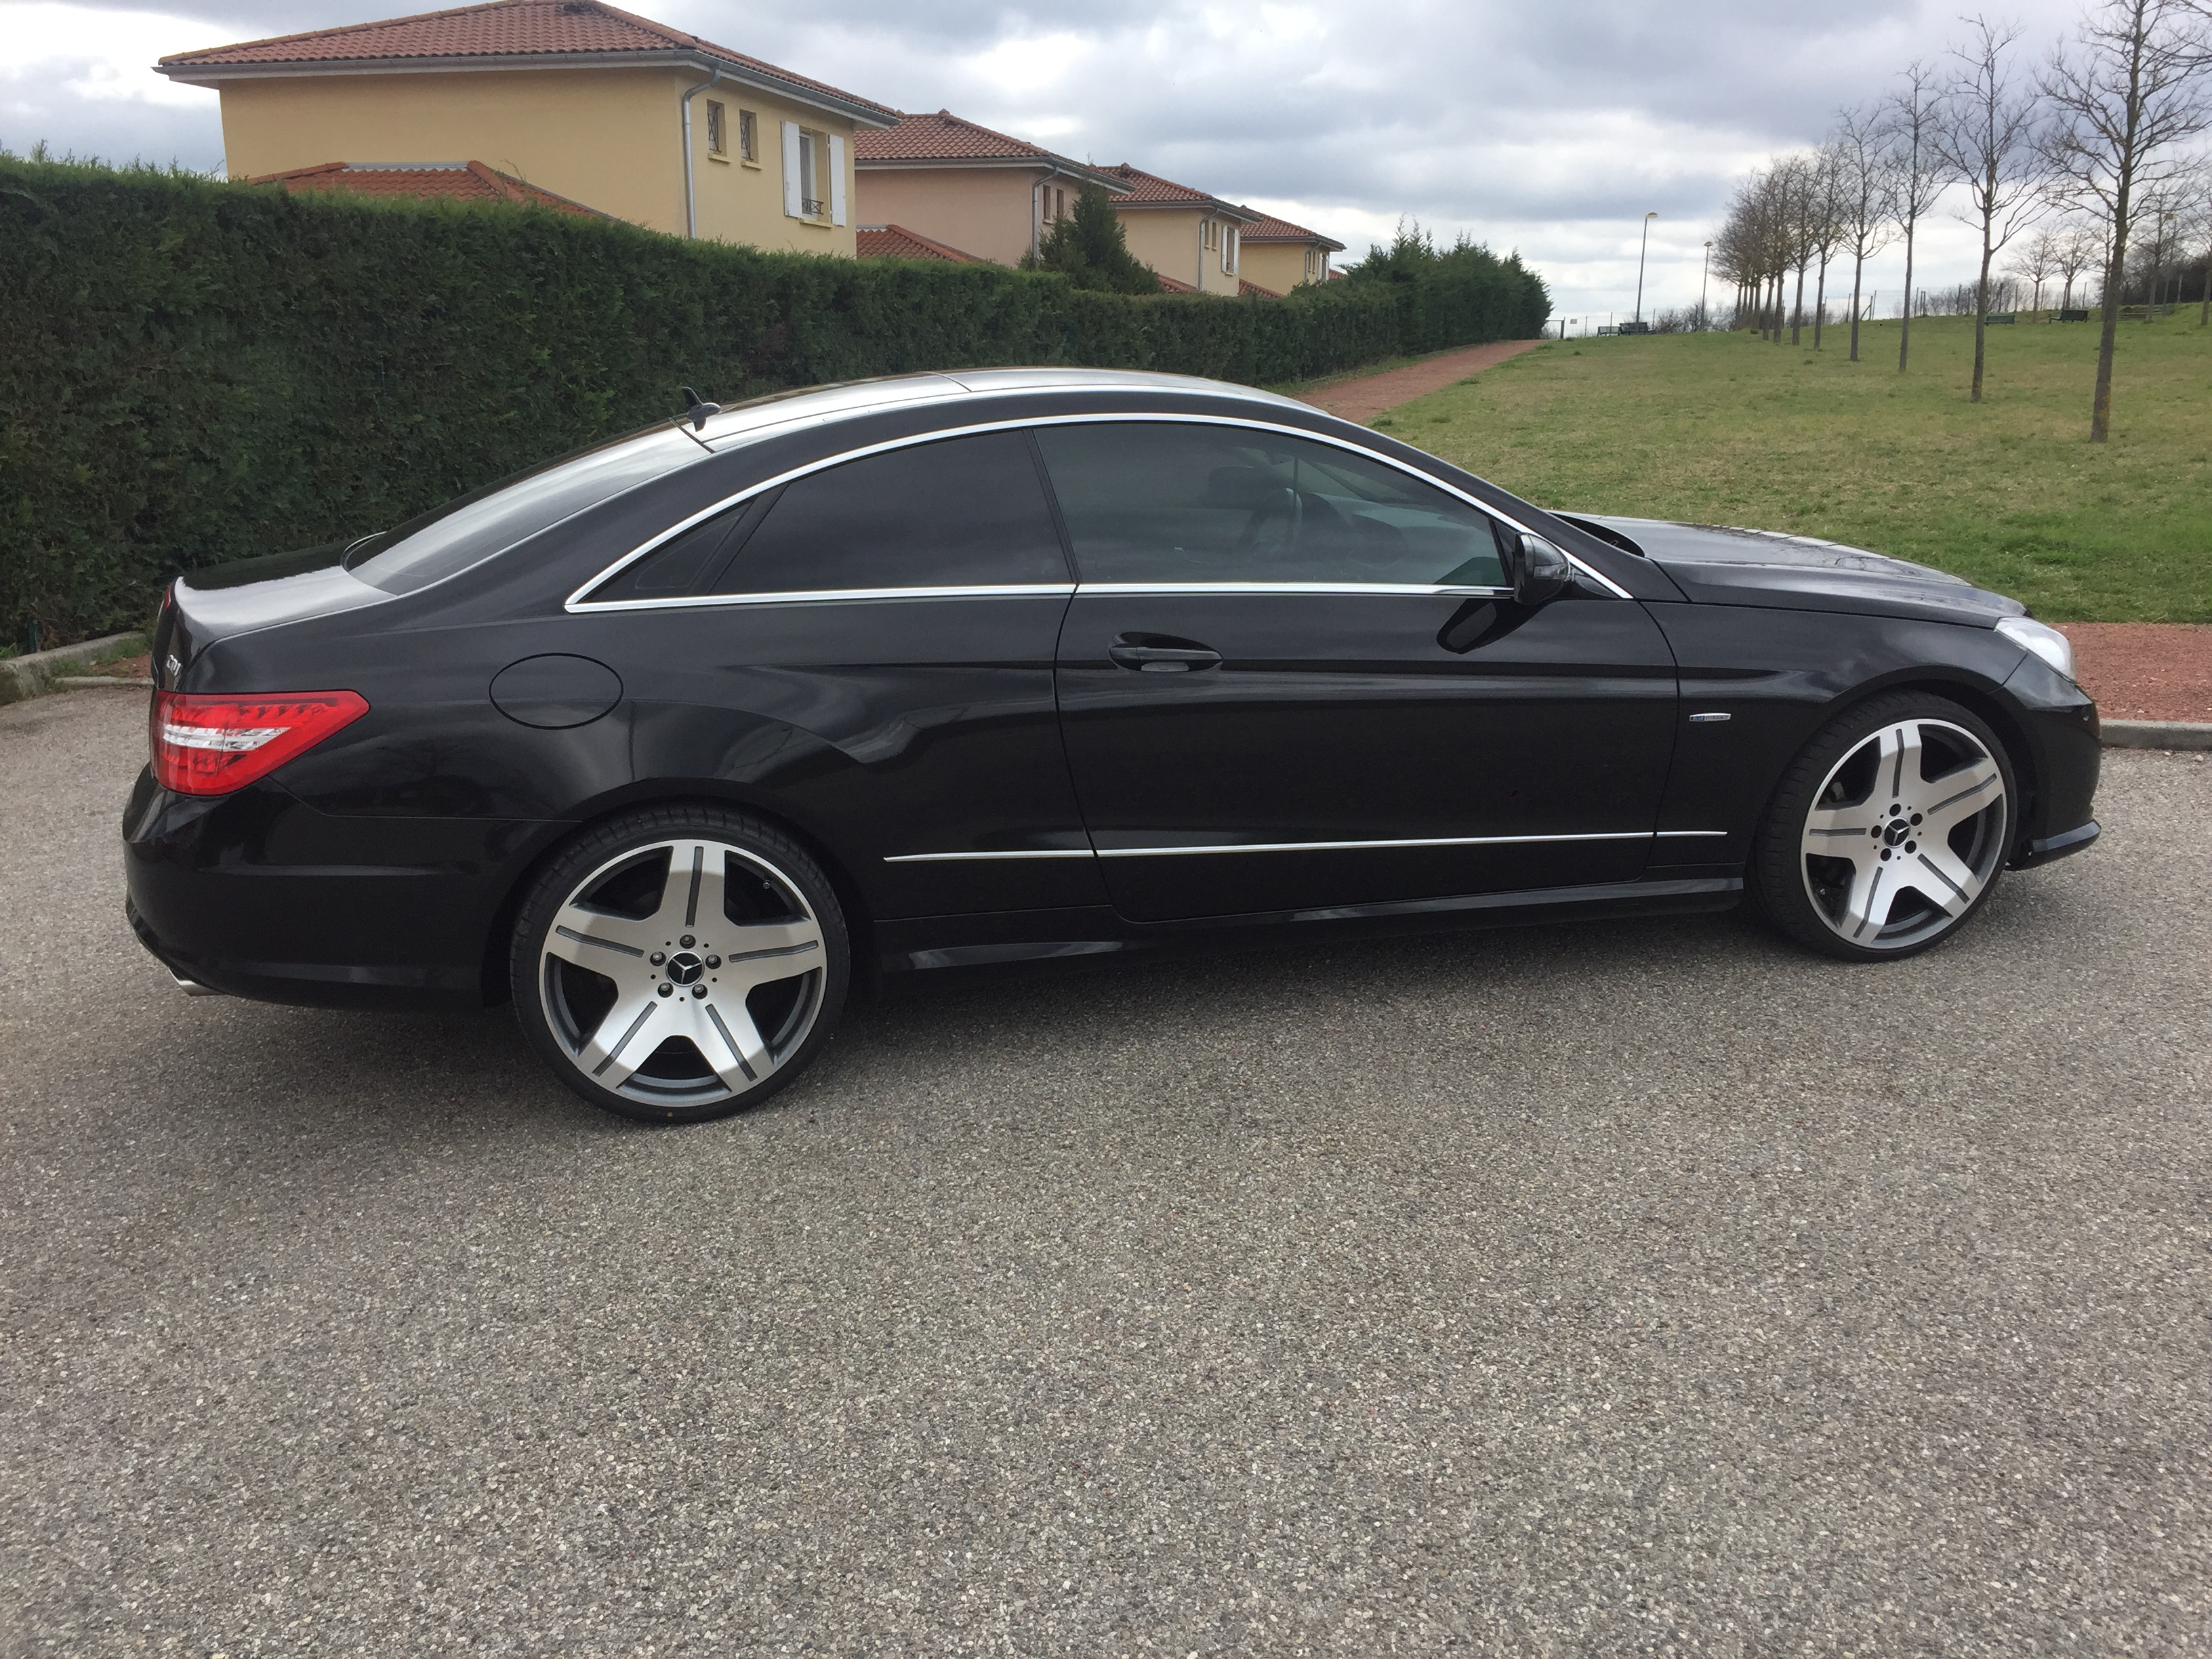 Mercedes classe e coupe 350 cdi 230 blueefficiency executive 7g tronic bva carventura - Mercedes classe e coupe 350 cdi ...